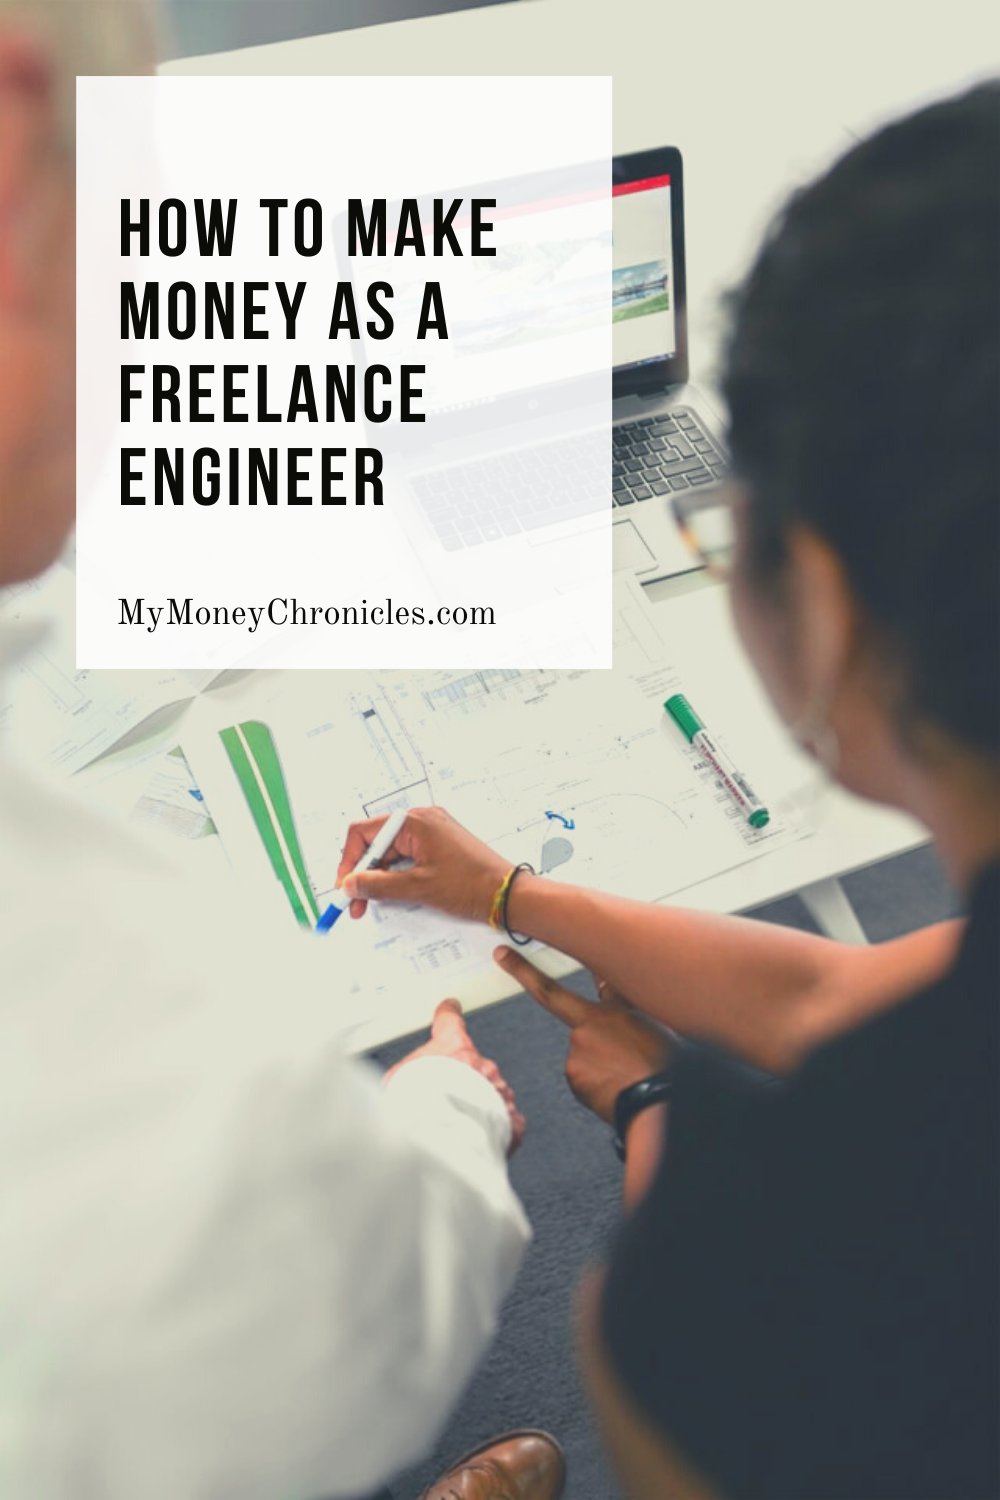 How to Make Money as a Freelance Engineer